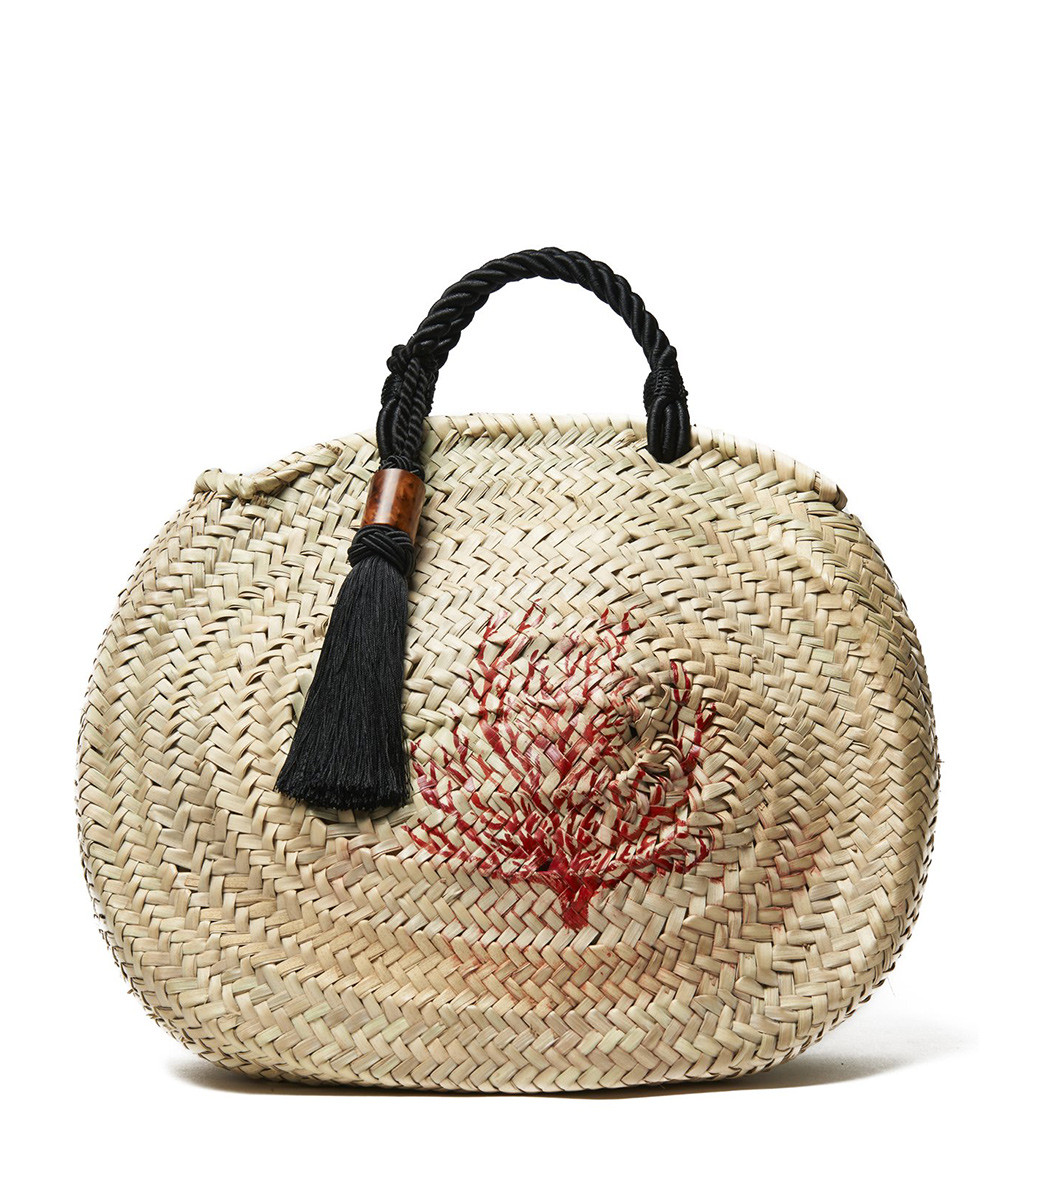 woven palm tassel tote with hand-painted coral